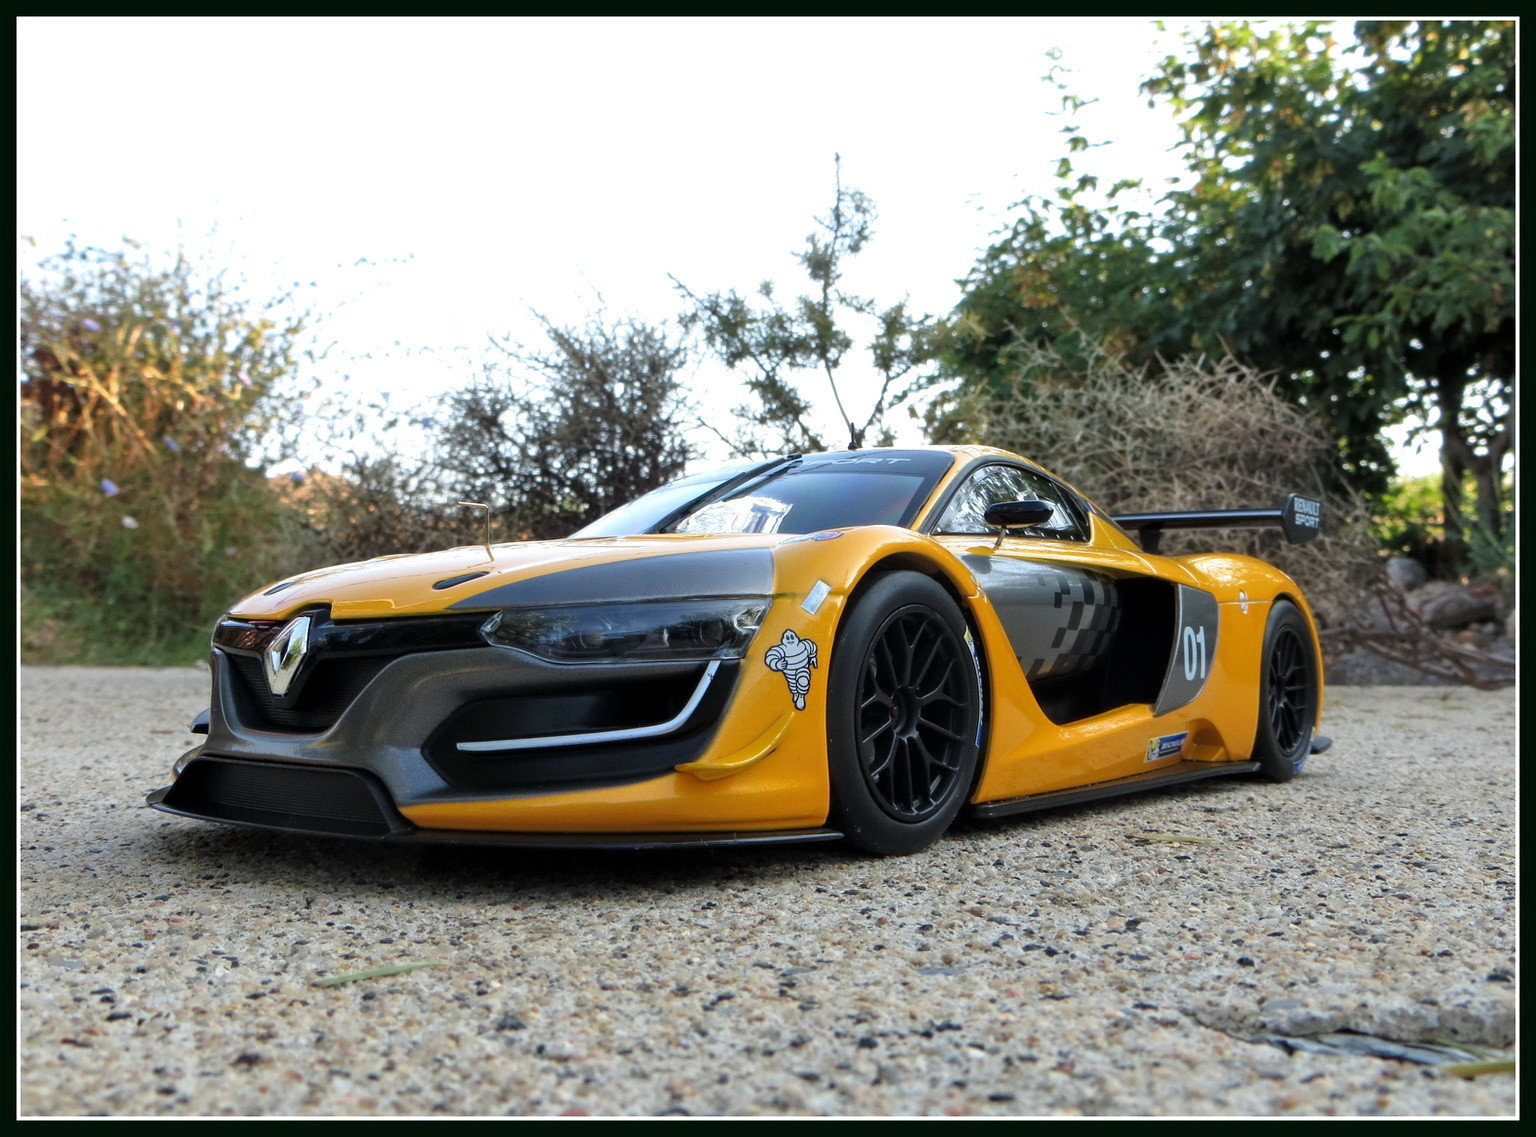 renault-rs 01-2015-013